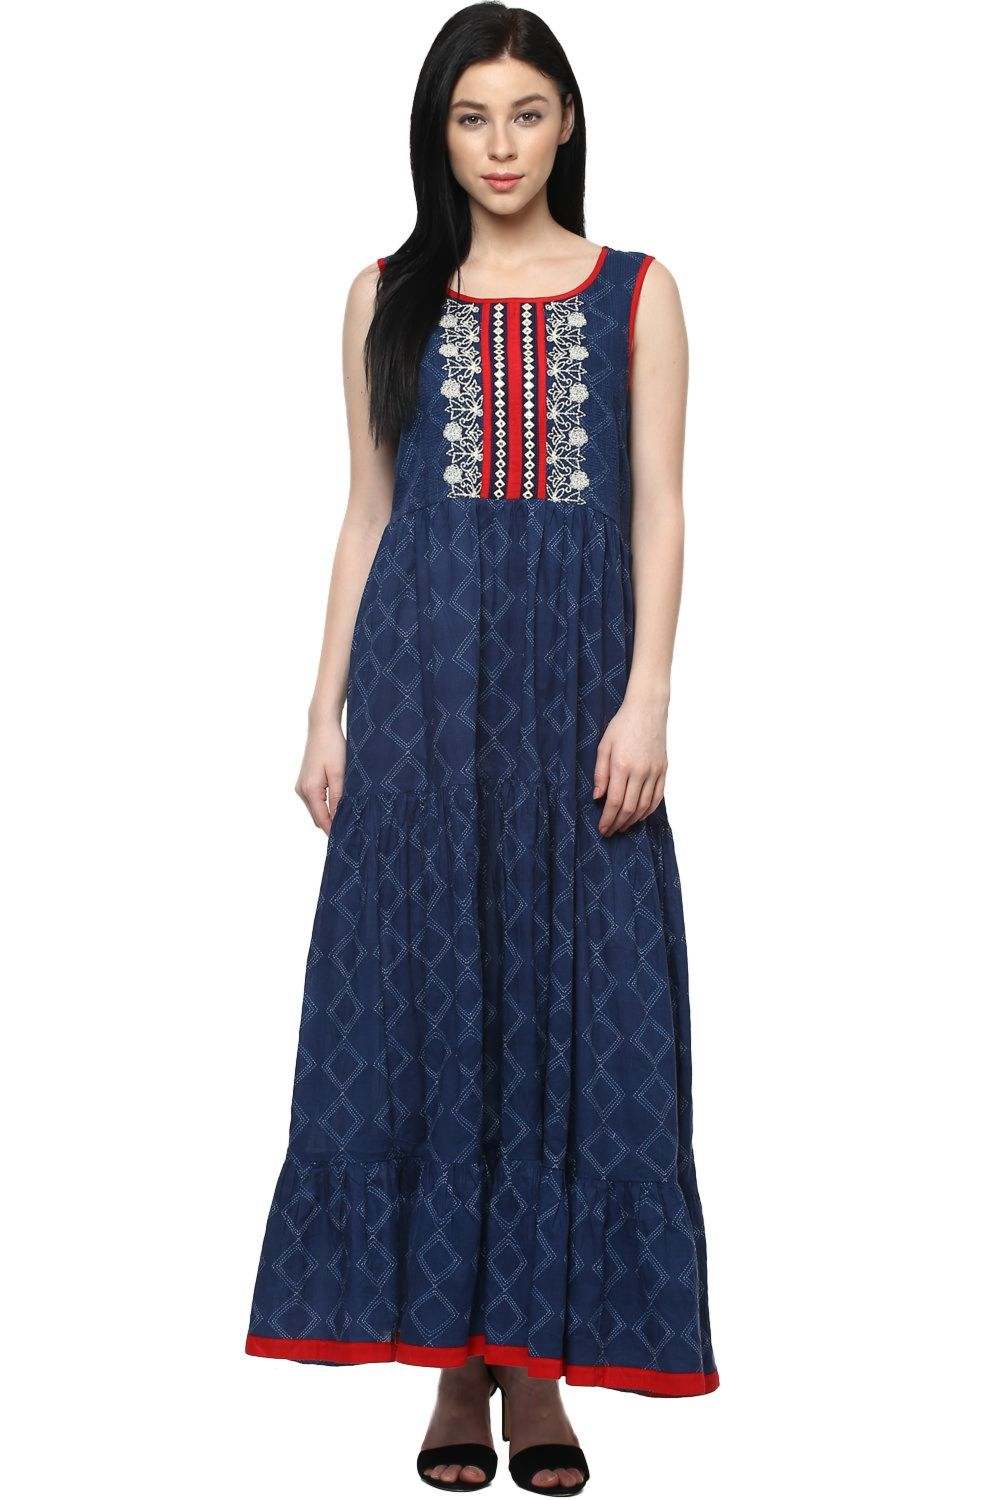 7348327ad4 Pantaloons Women Dresses - Buy Dresses for Women Online